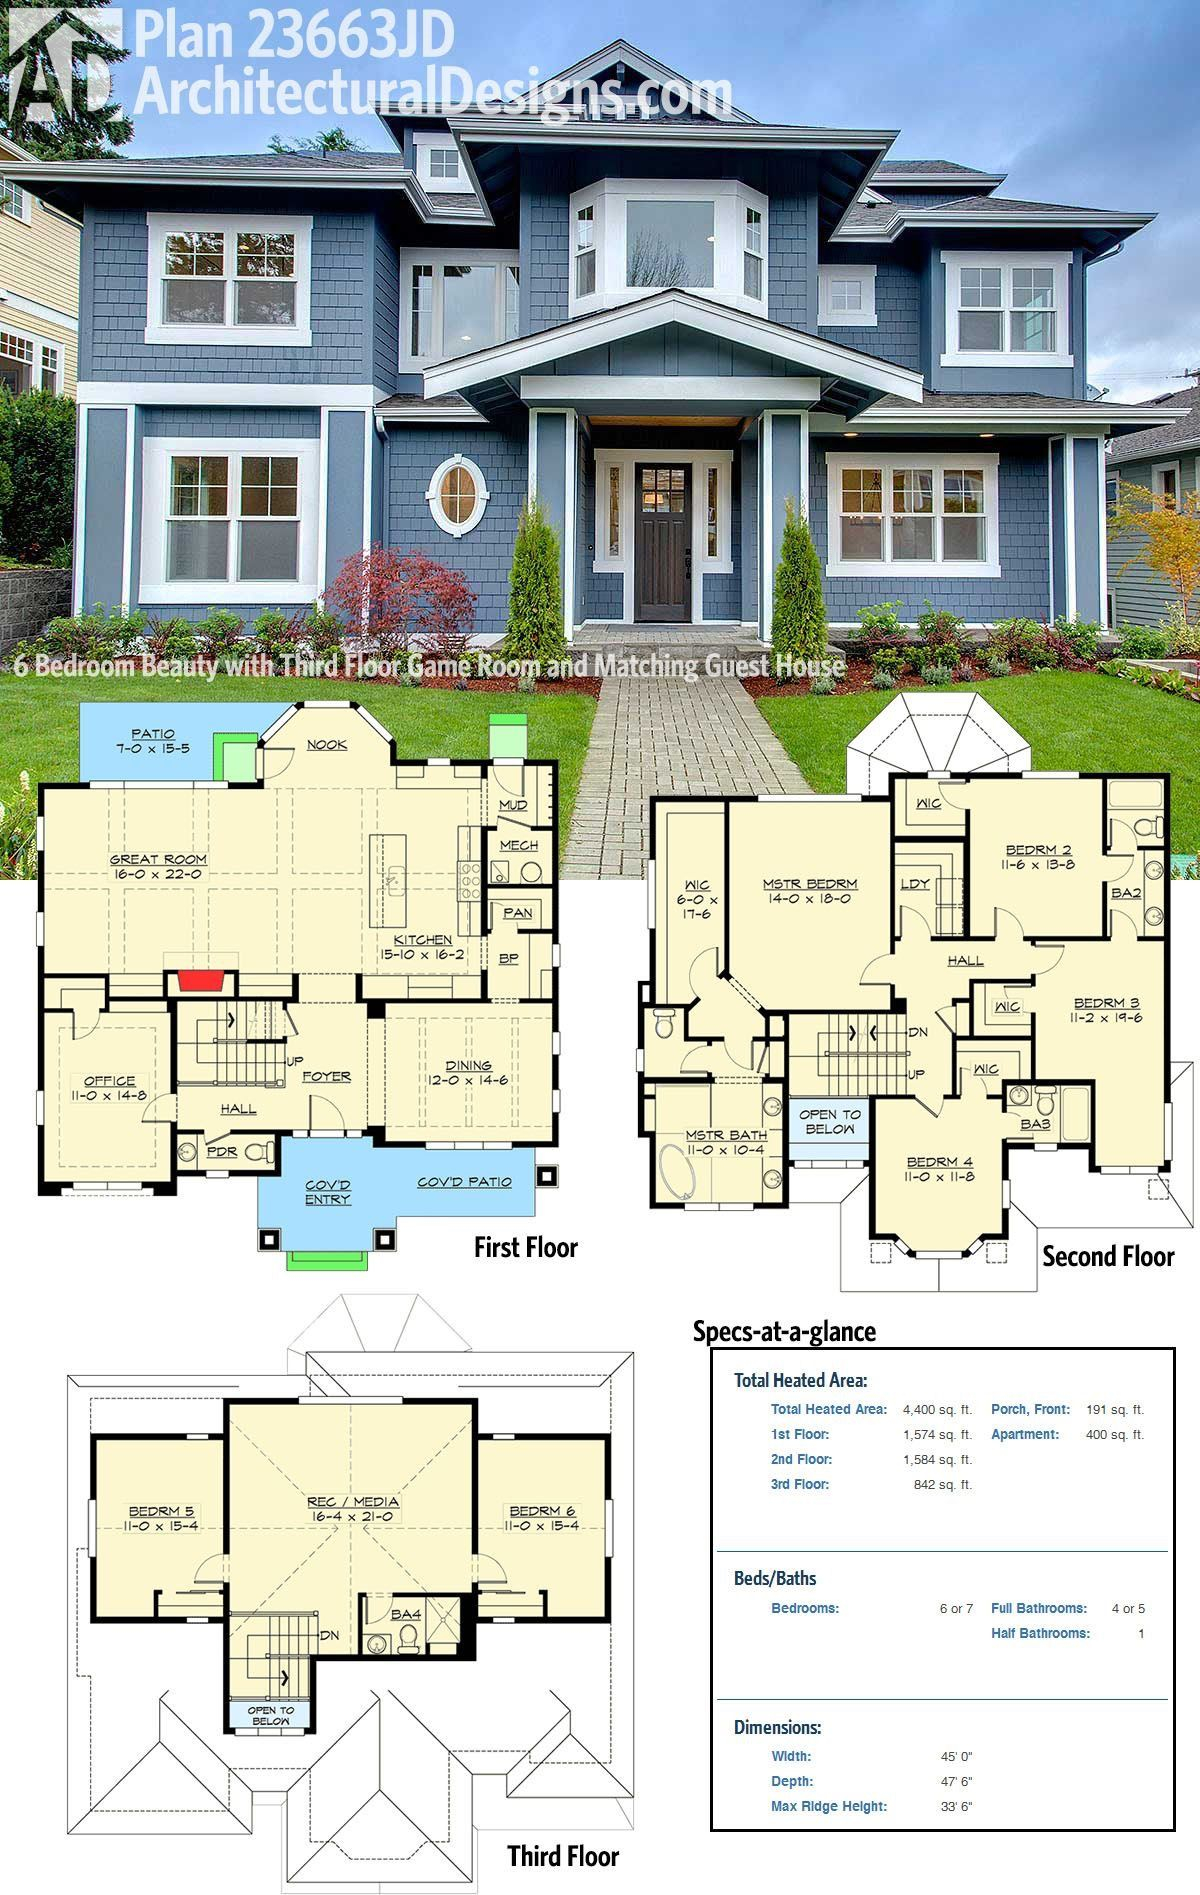 remarkable floor plan a 2 bedroom house house floor plan design Amazing house plan!! Love it